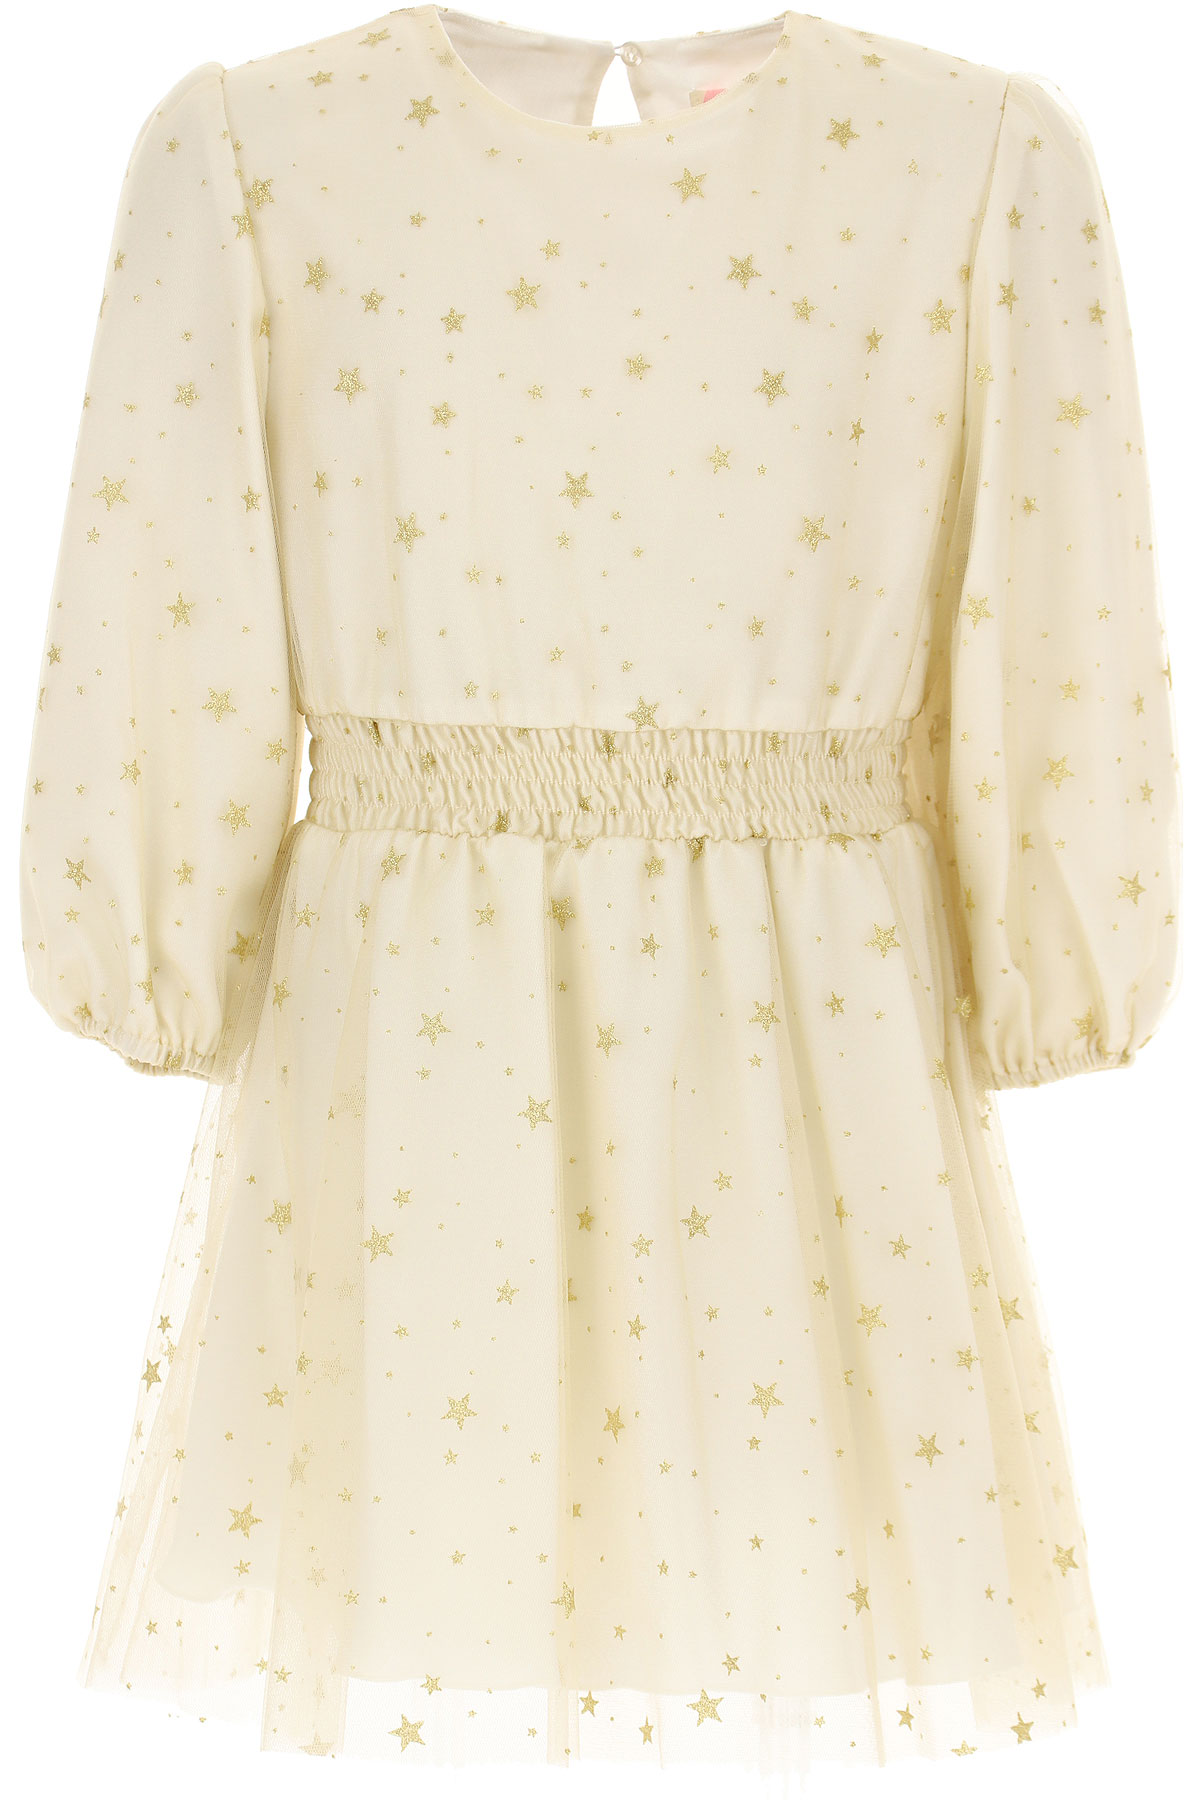 Vicolo Girls Dress On Sale, Ivory, polyester, 2019, 4Y 8Y